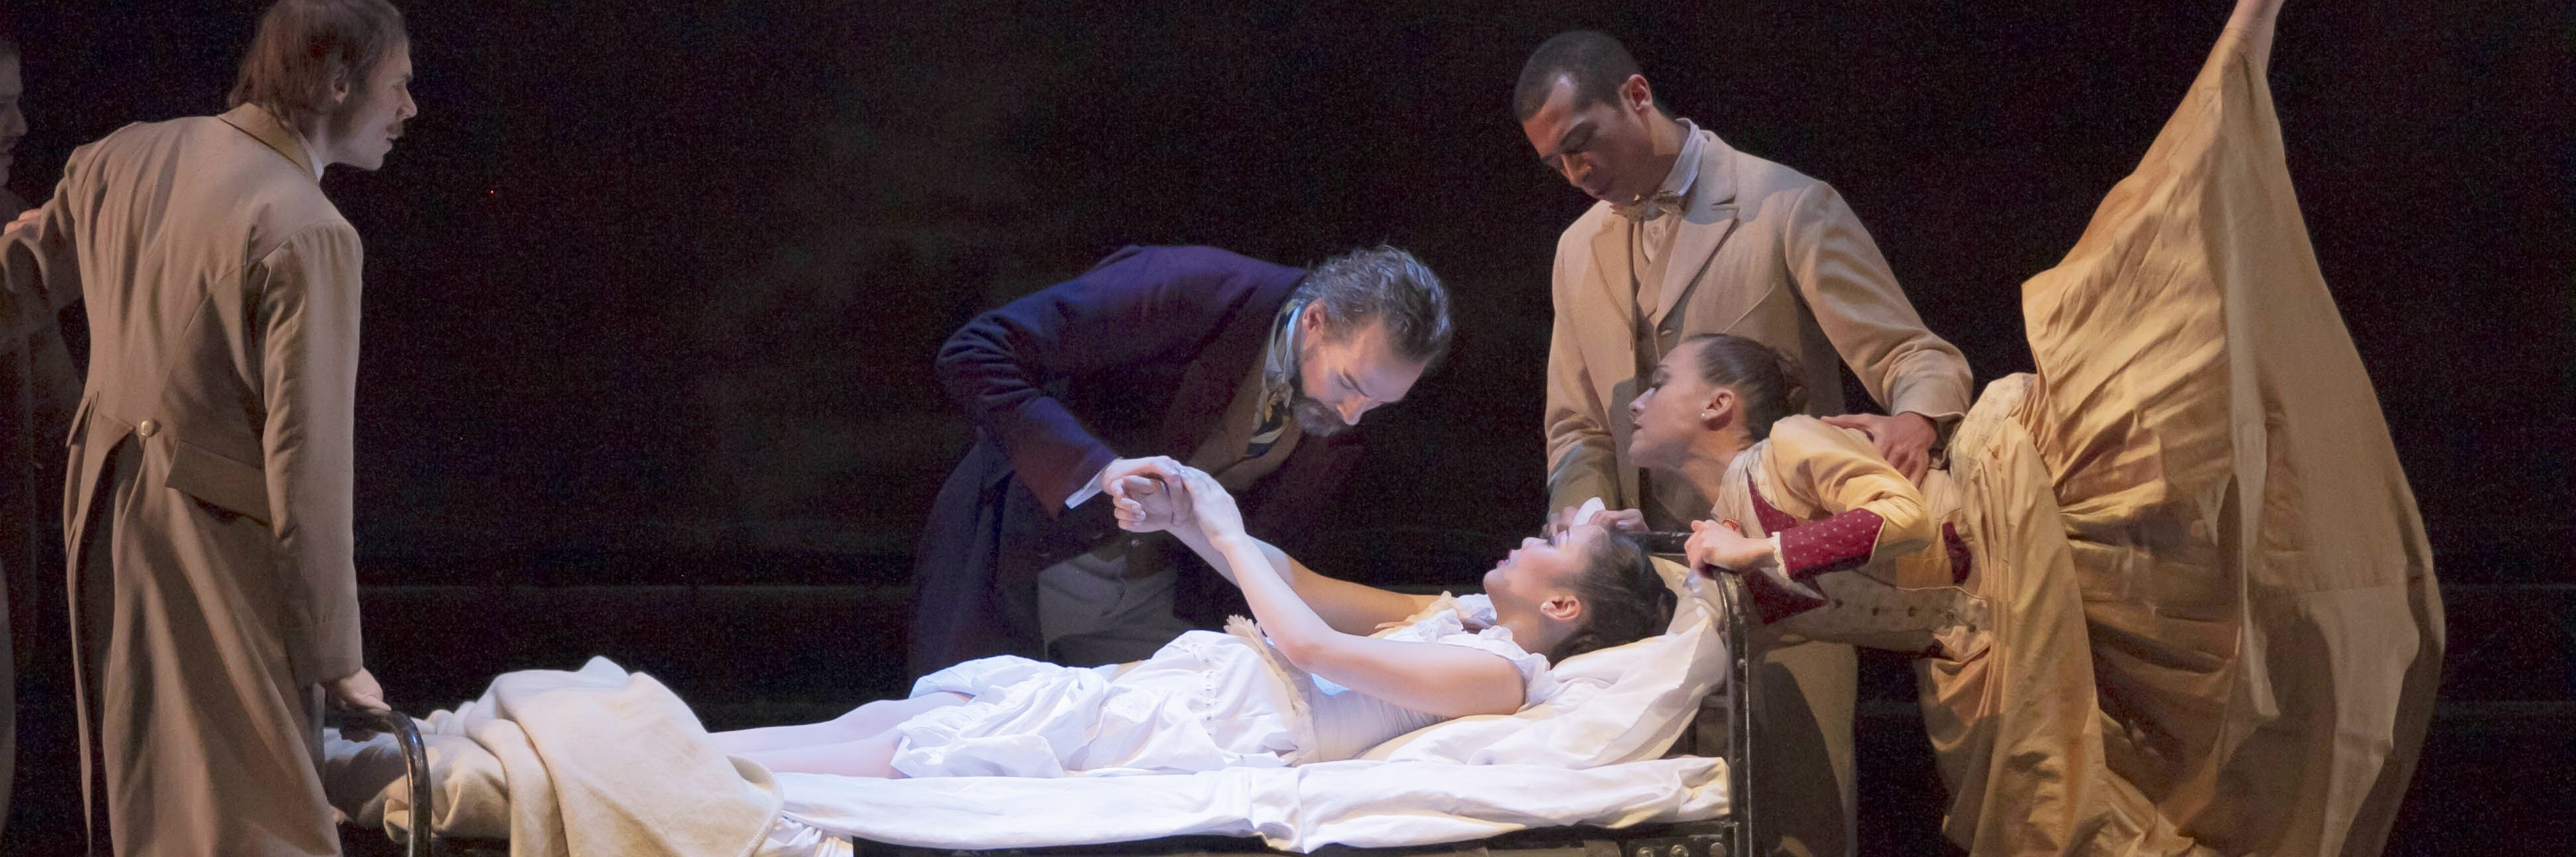 POISED BETWEEN STORY AND GORE: KC Ballet's 'Dracula' impresses the eye, frustrates the soul